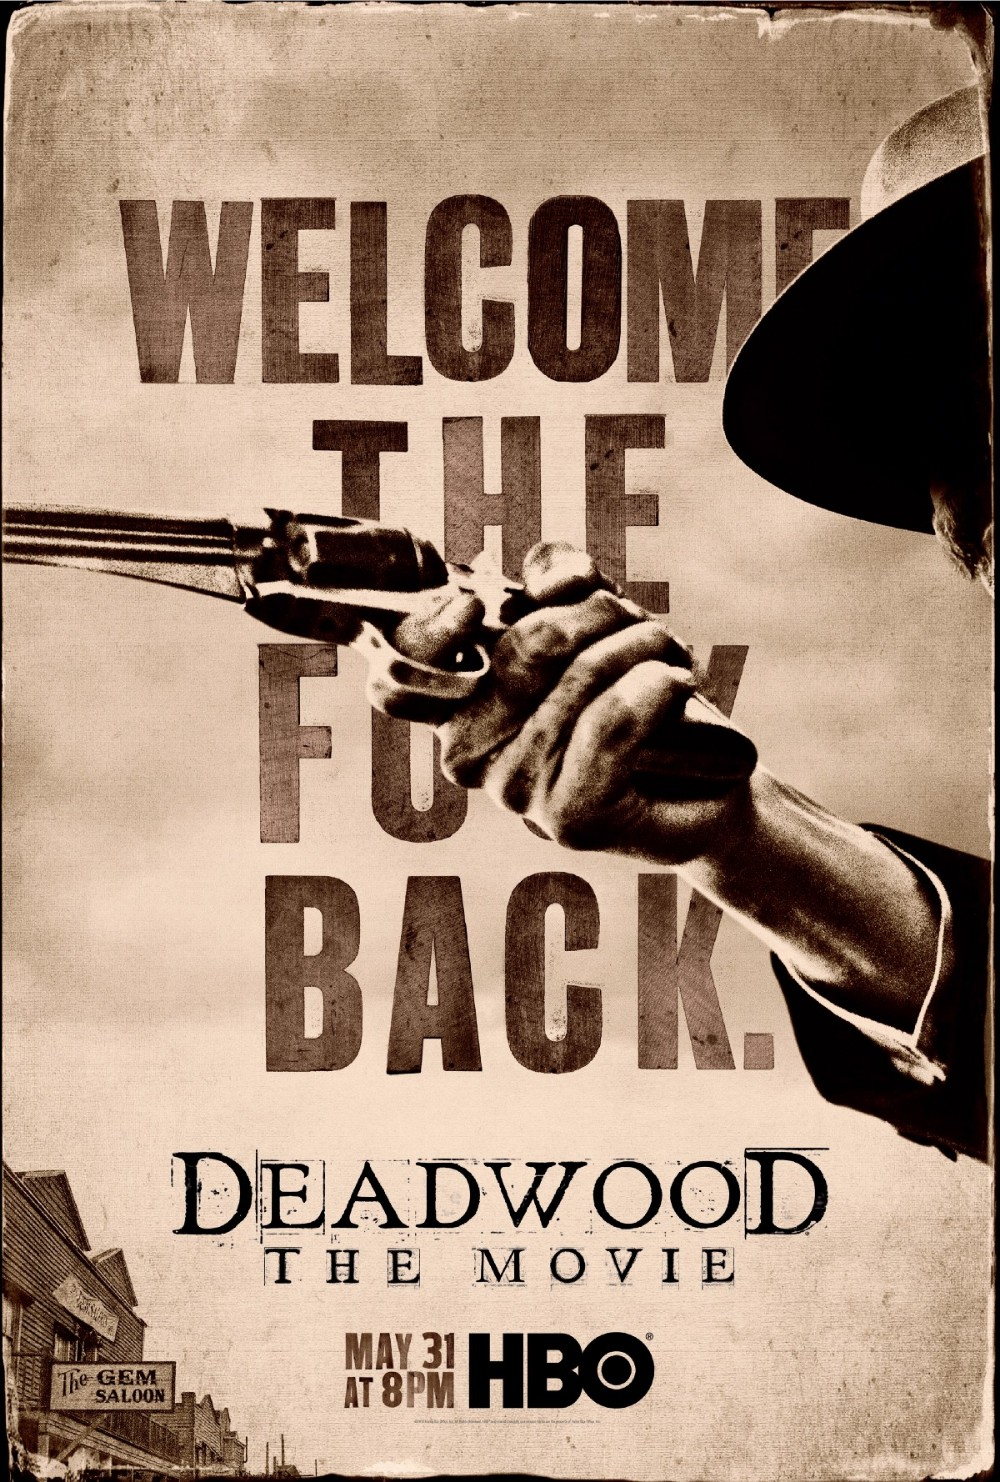 Deadwood The Movie poster